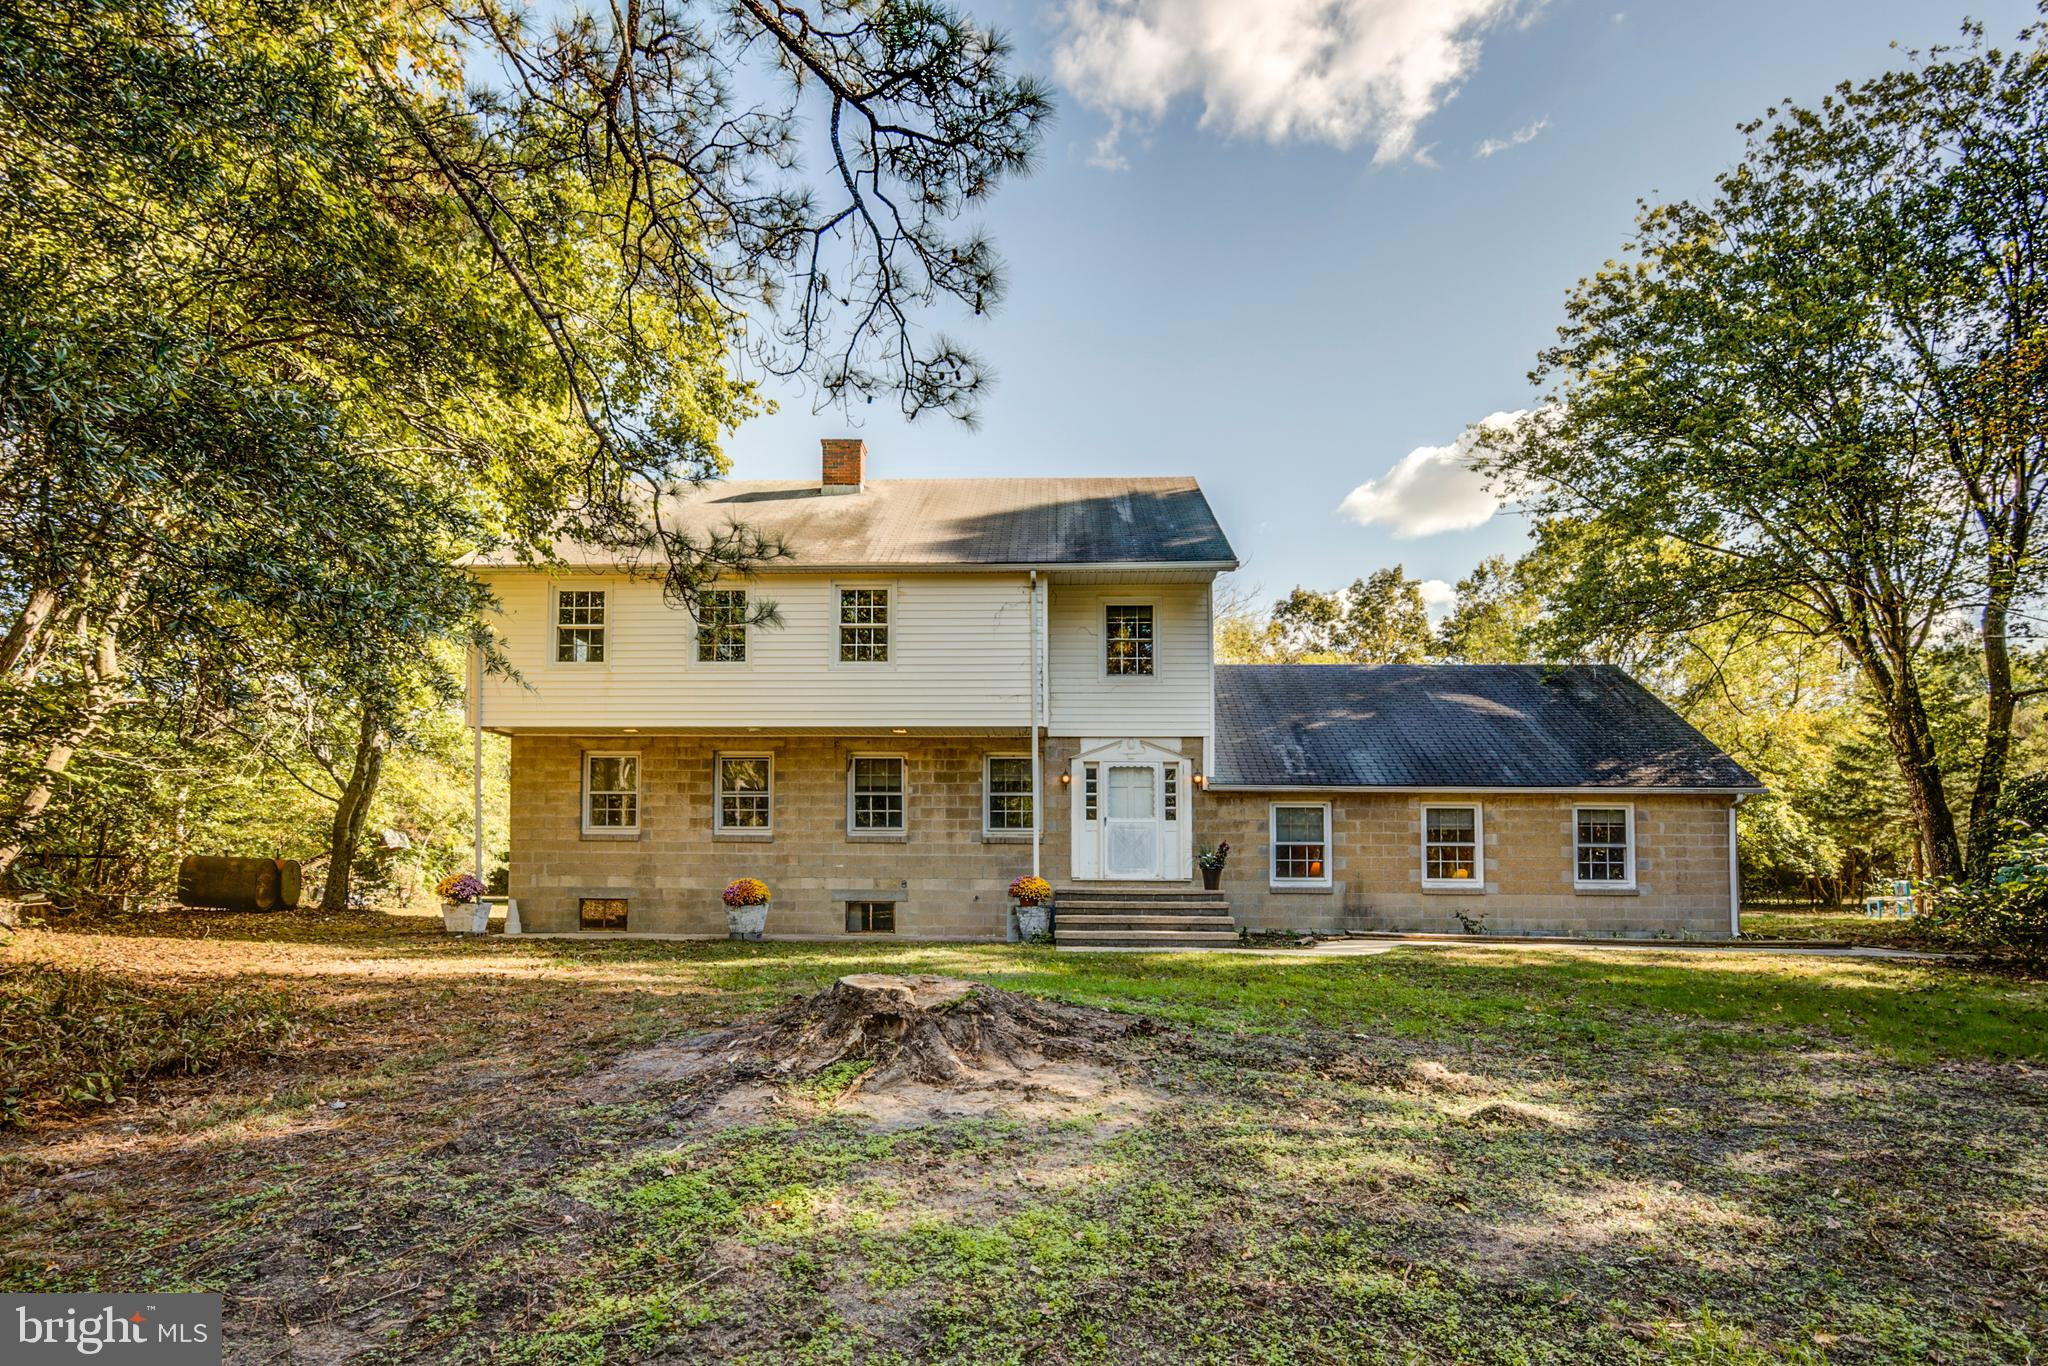 Nestled in the quiet countryside of Greenwood, this gorgeous Colonial-style home boasts 2,900 square